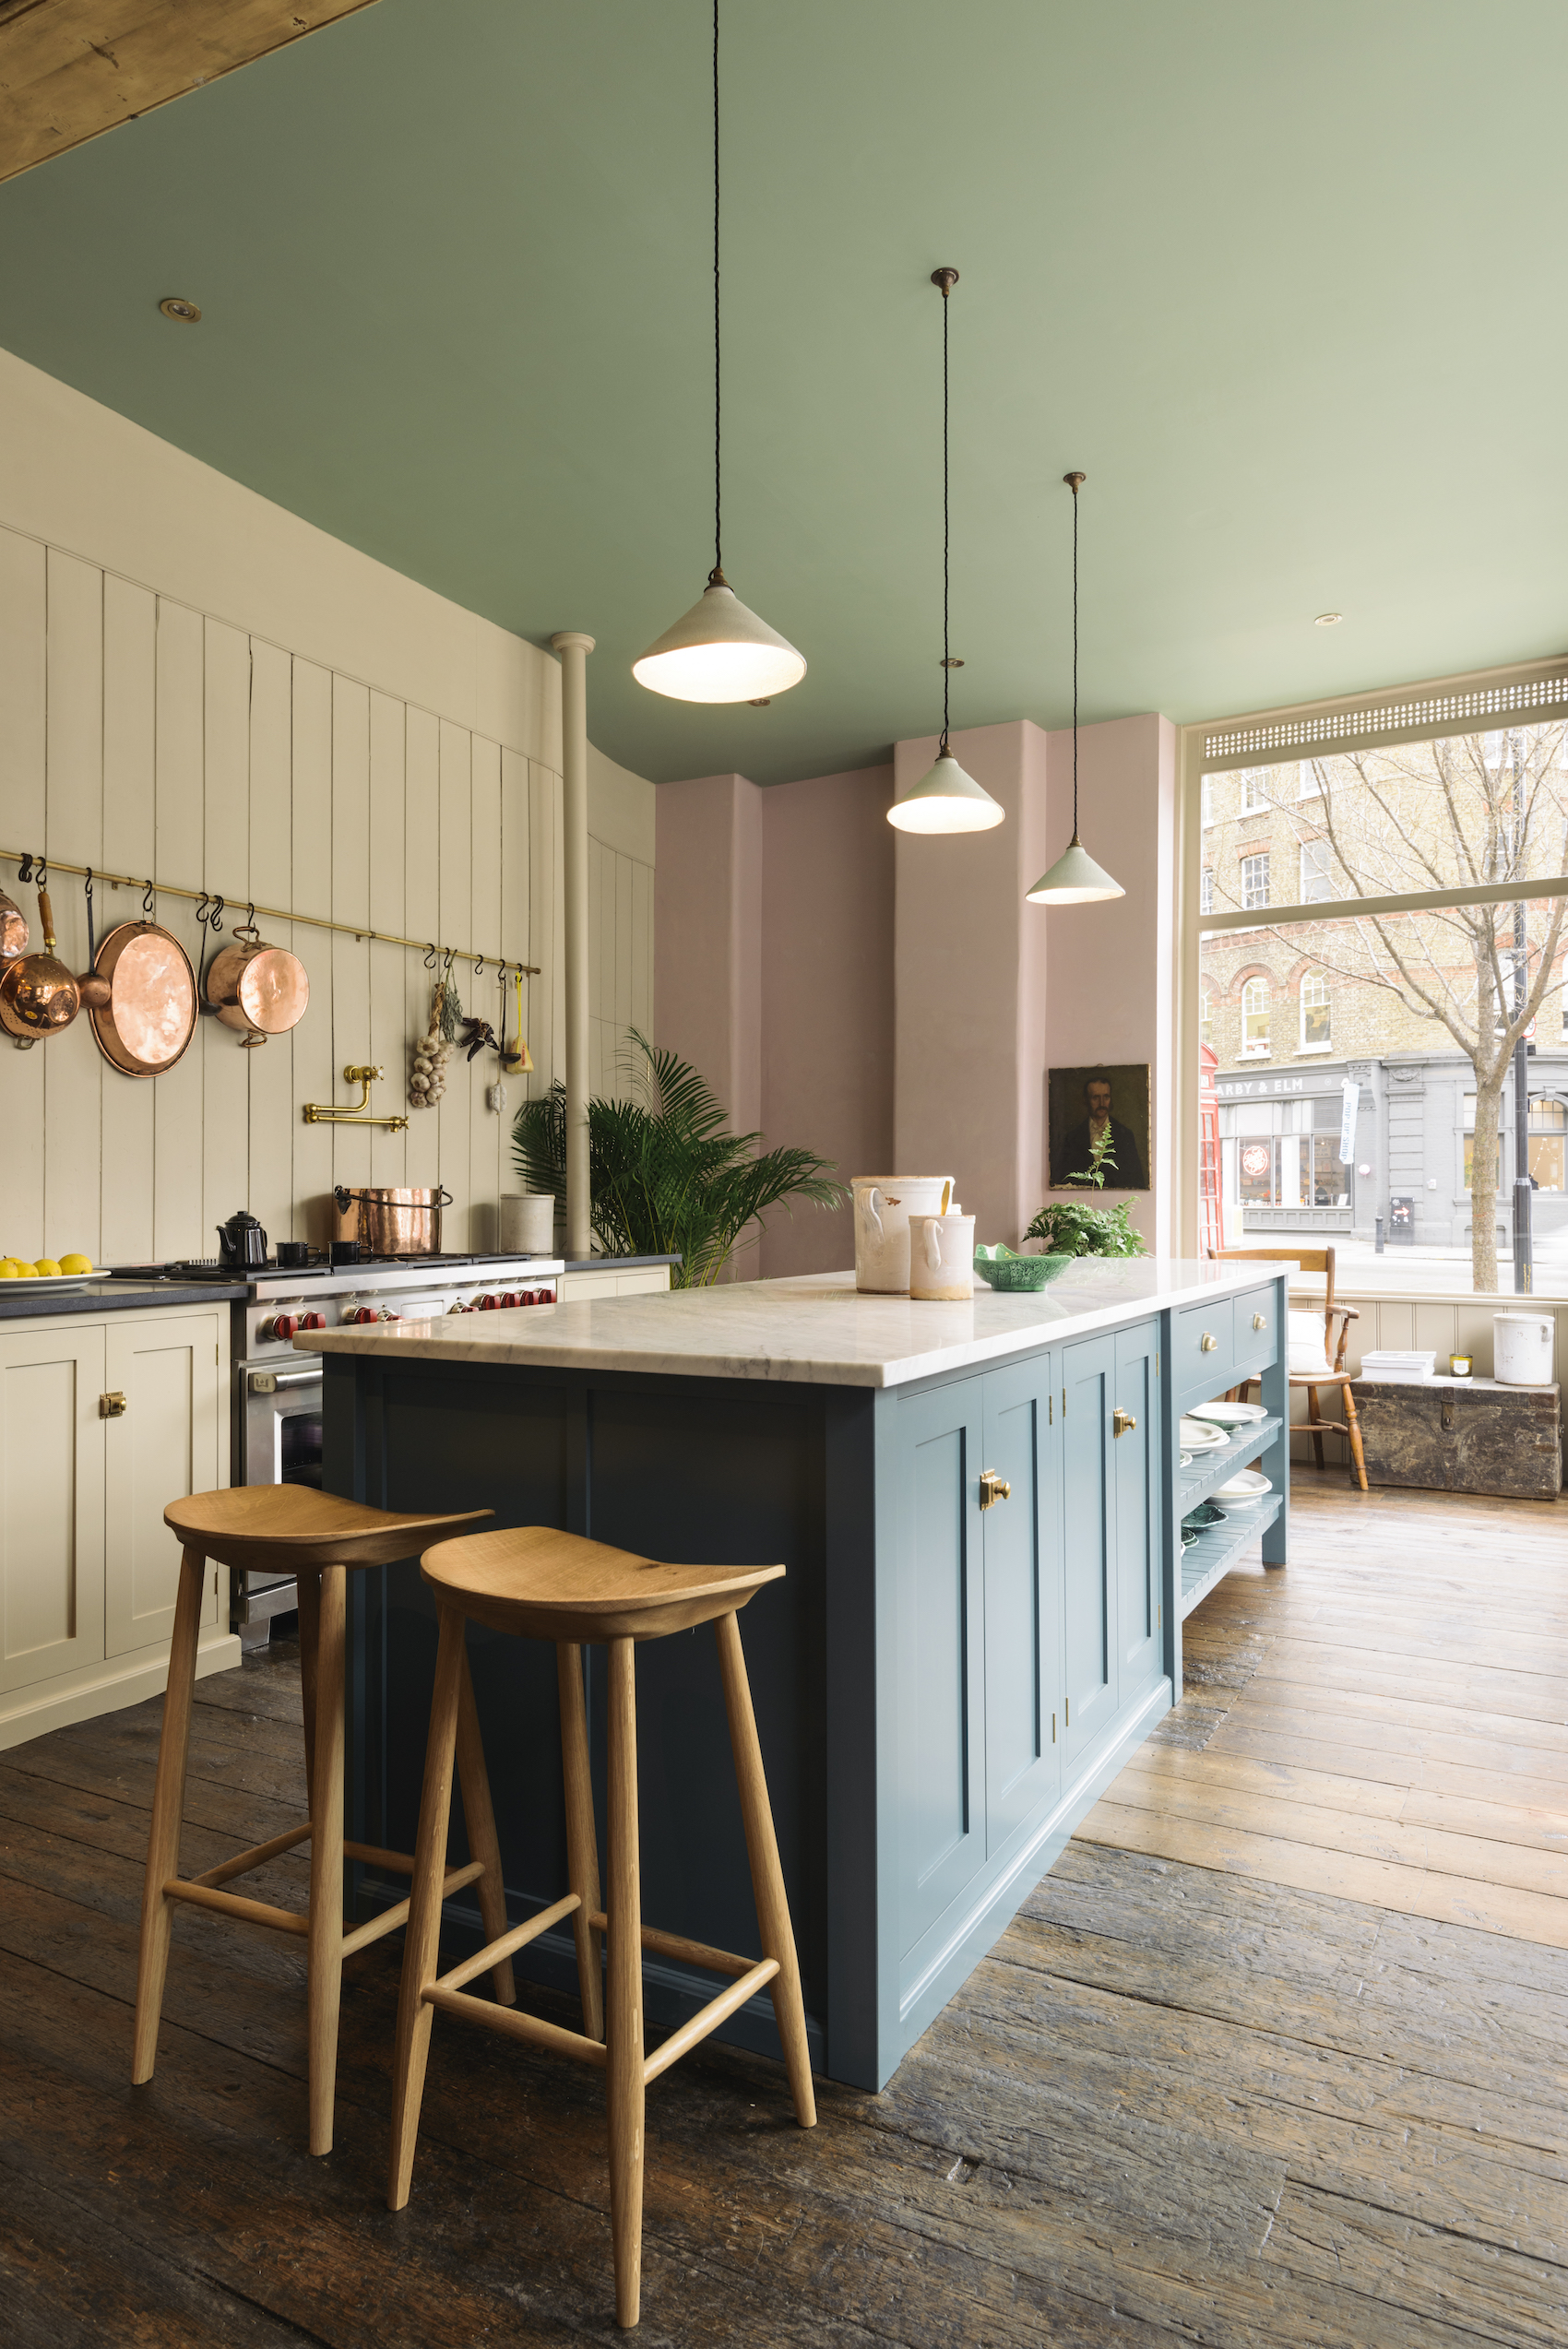 deVOL's Kitchen Showroom in Clerkenwell, London | Design*Sponge